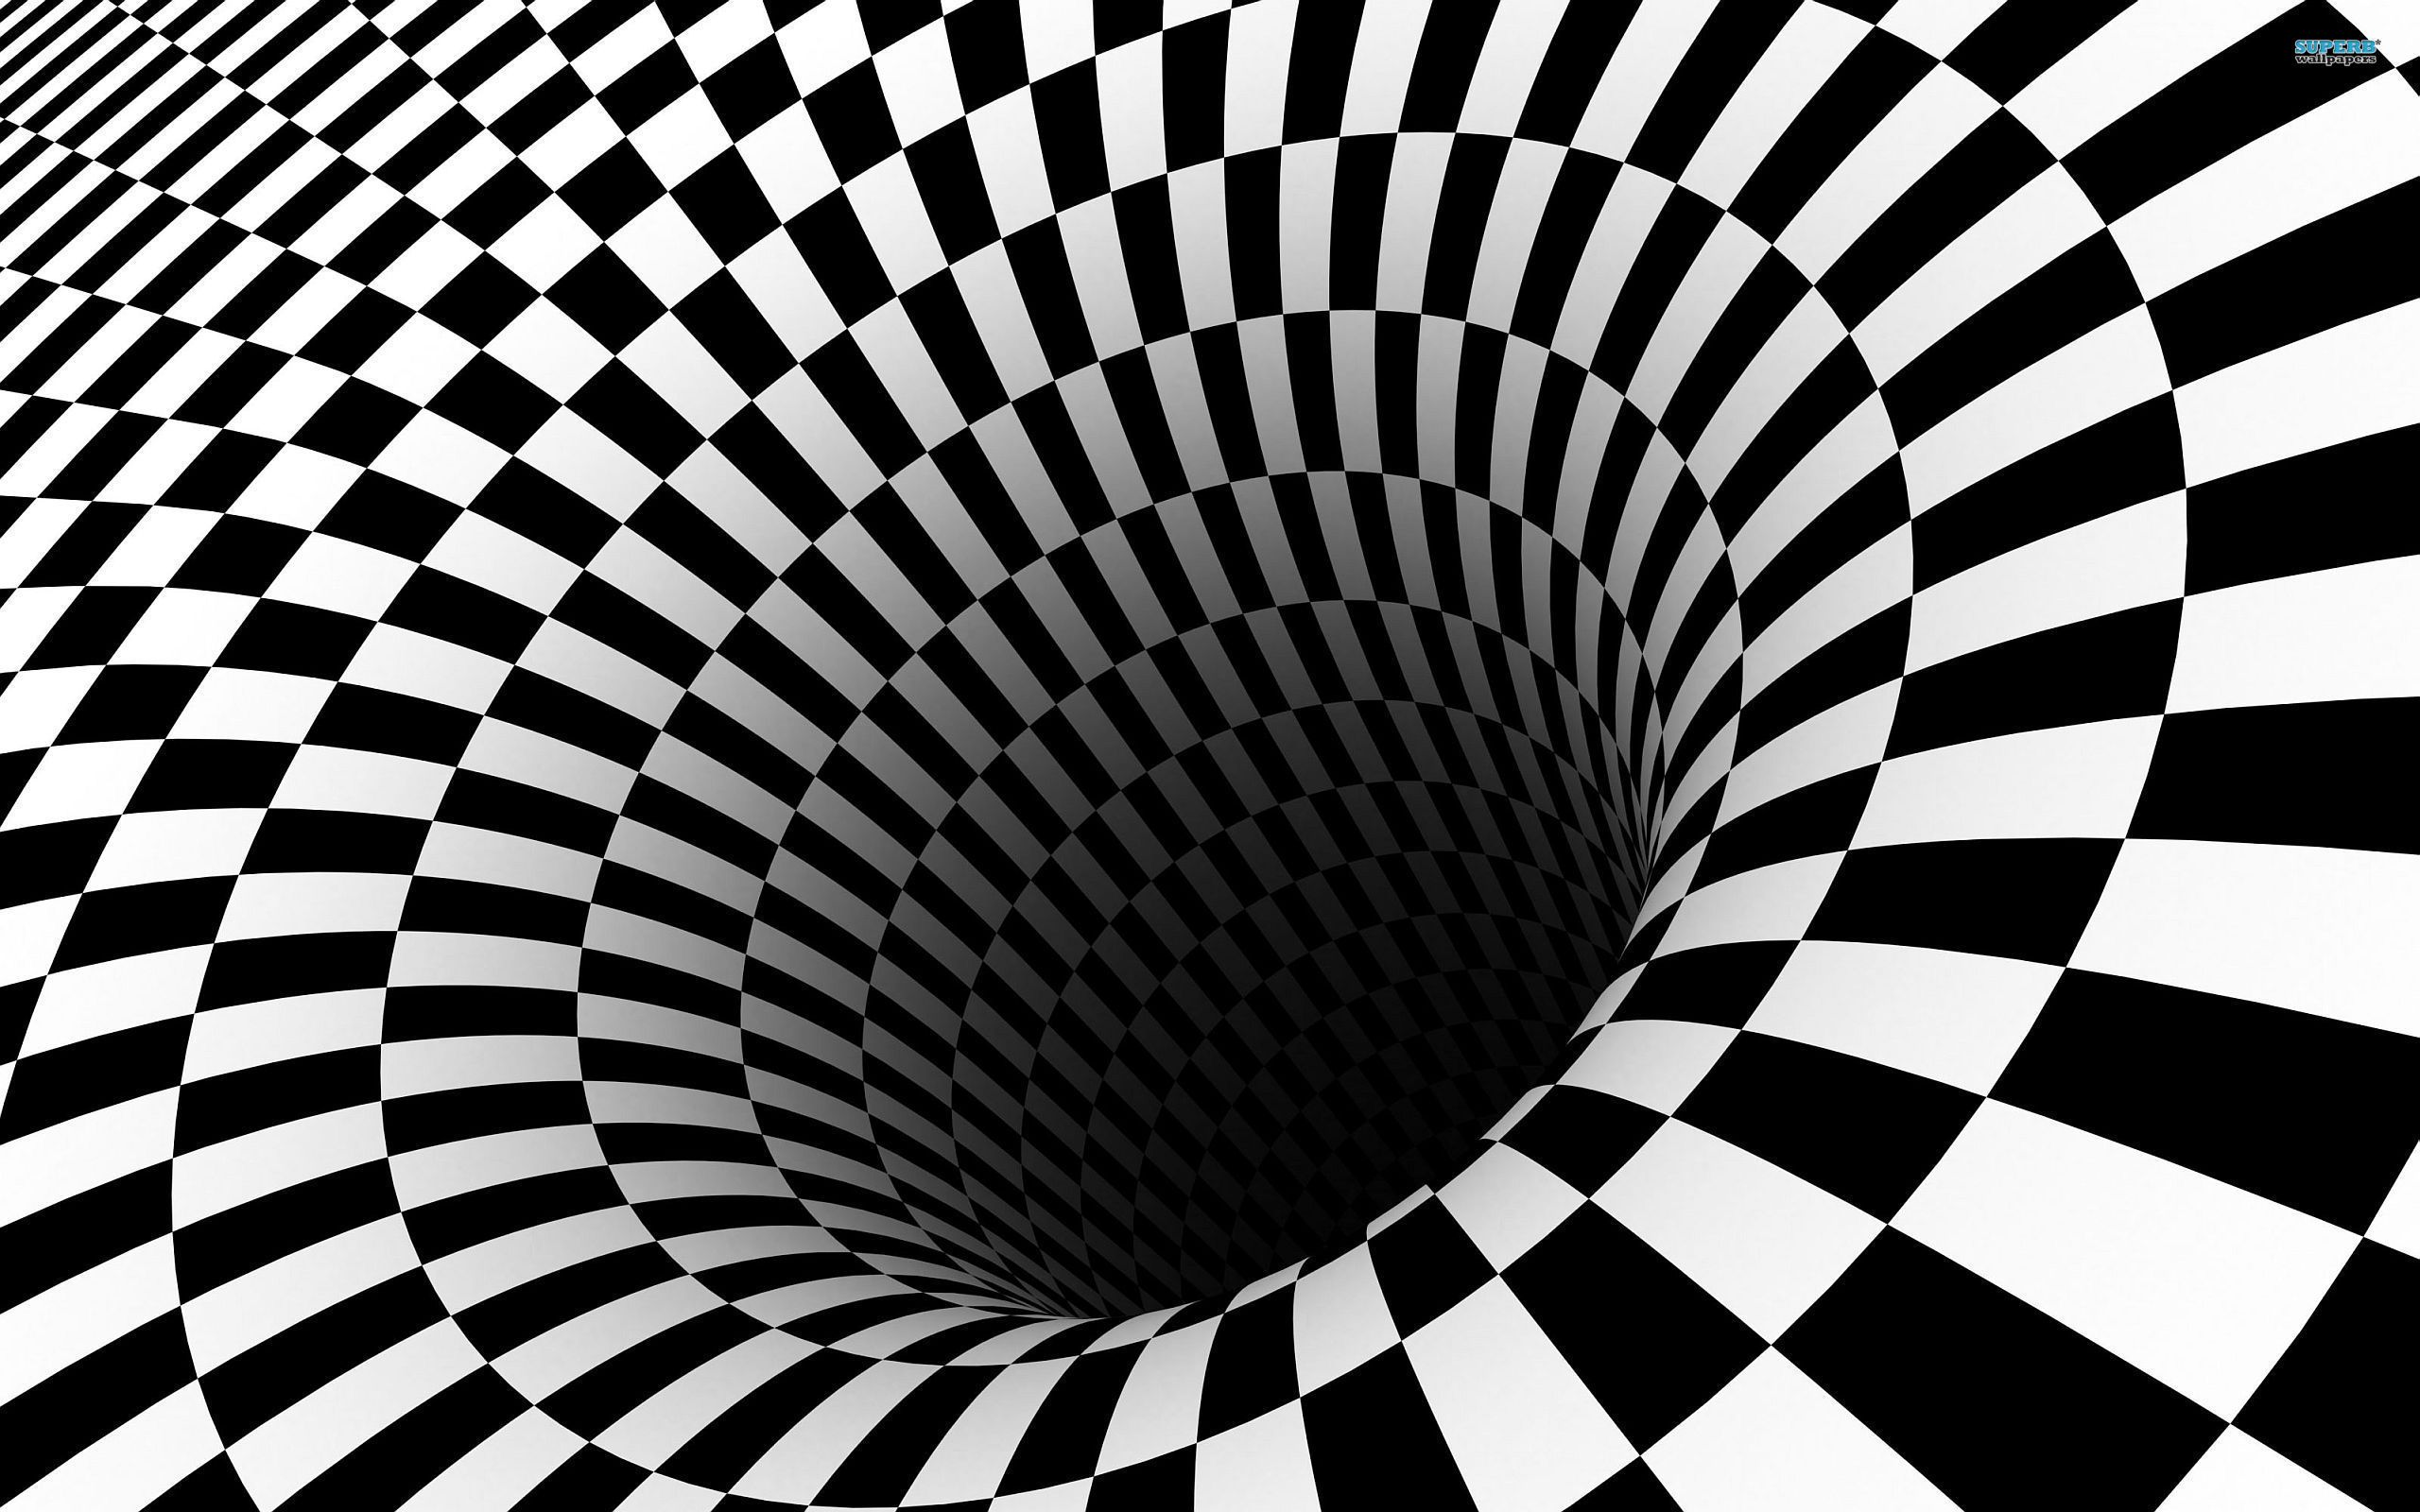 Abstract 3d black n white 15 43622 hd screensavers hd for Black and white 3d wallpaper